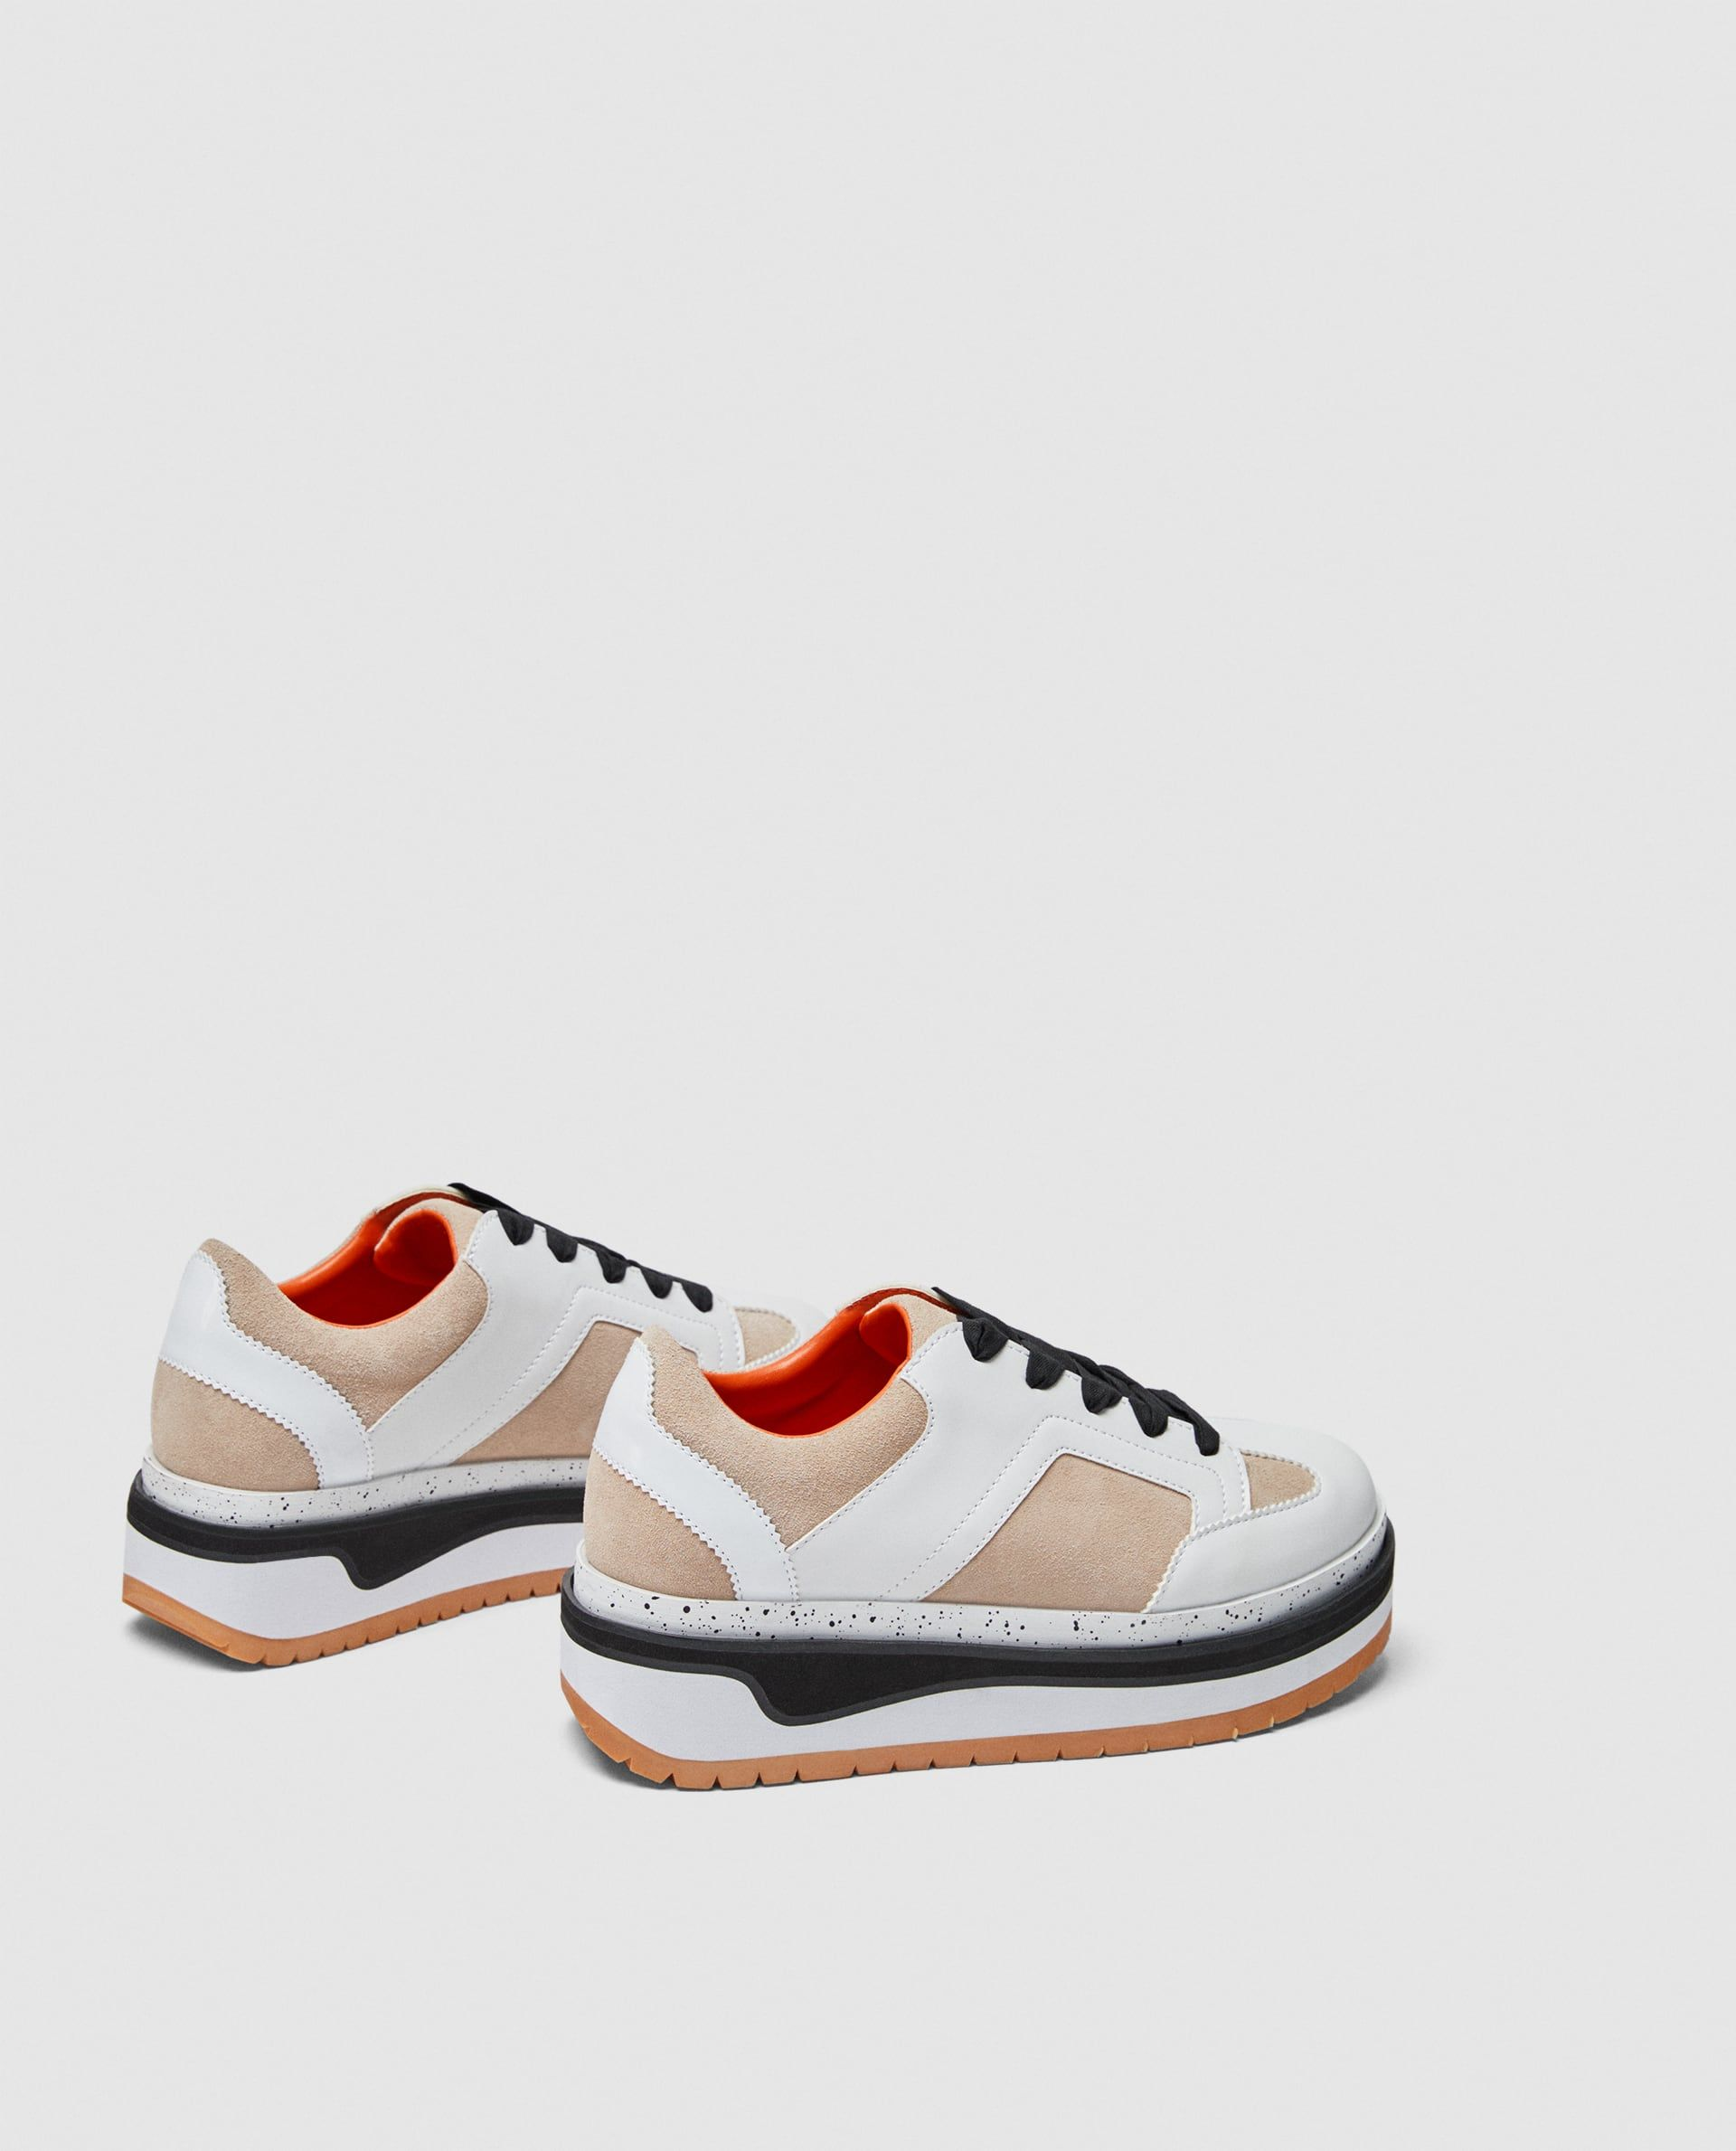 bbca3d33694be9 Image 1 of CONTRASTING FLATFORM SNEAKERS from Zara